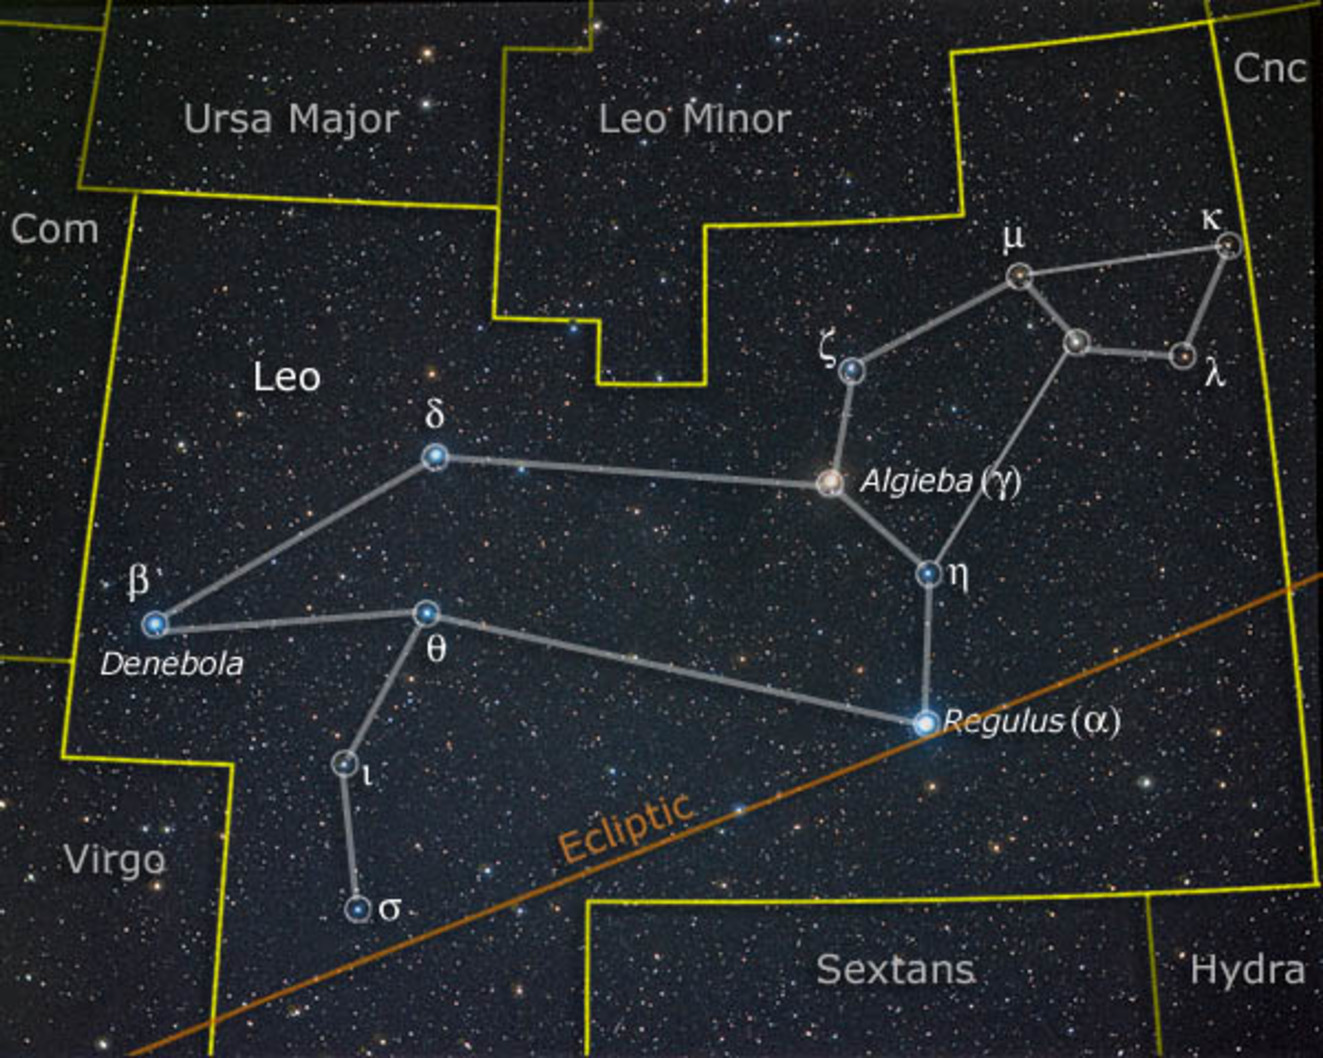 Regulus star is the brightest star in the constellation of Leo